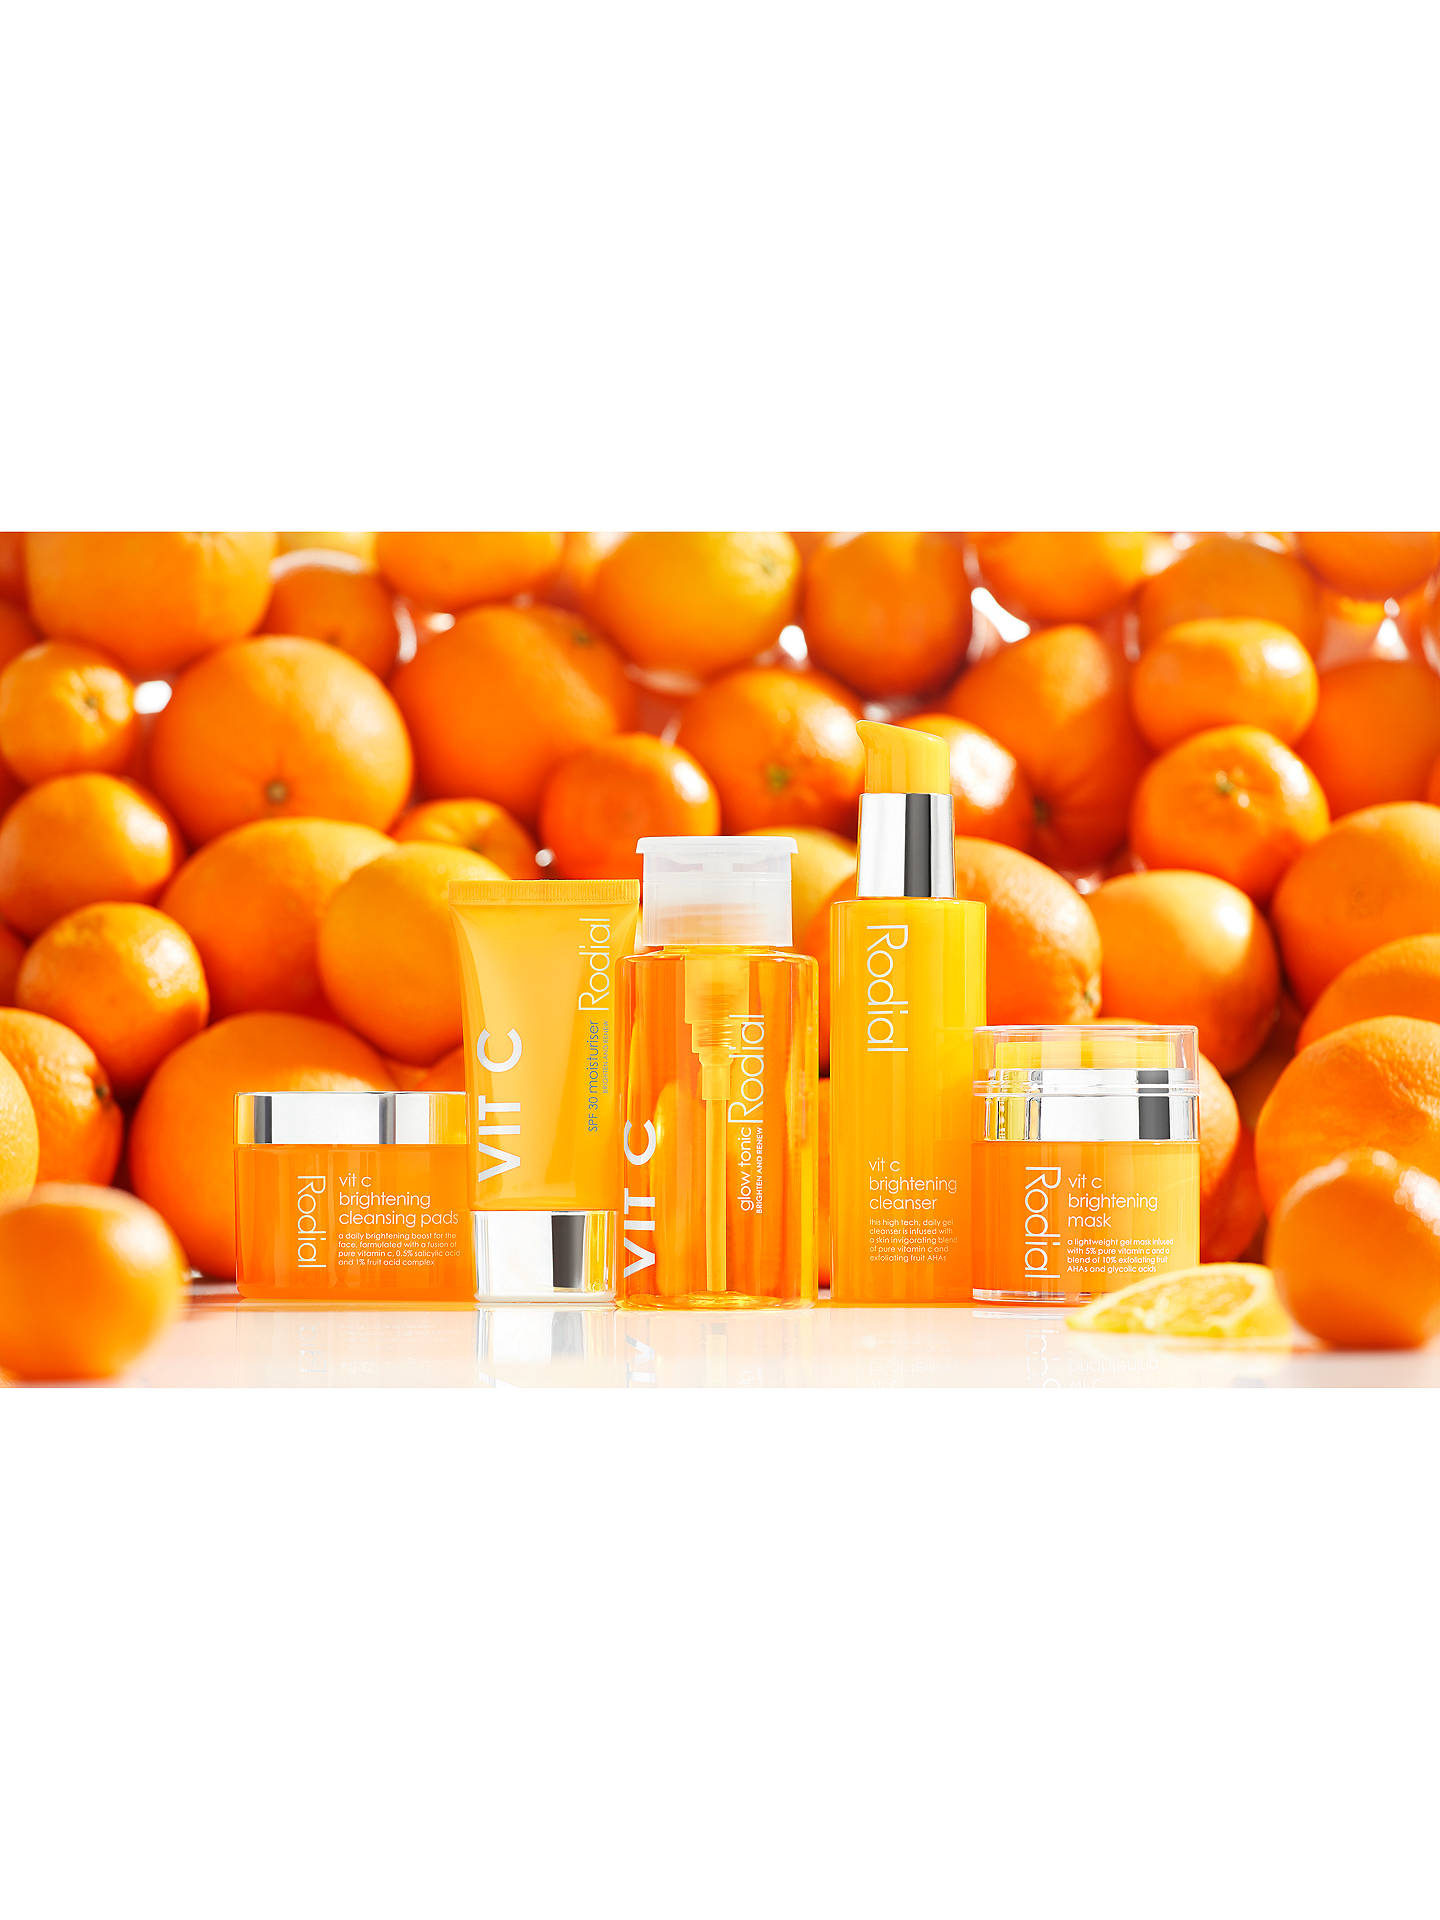 Buy Rodial Vit C Brightening Cleansing Pads Online at johnlewis.com